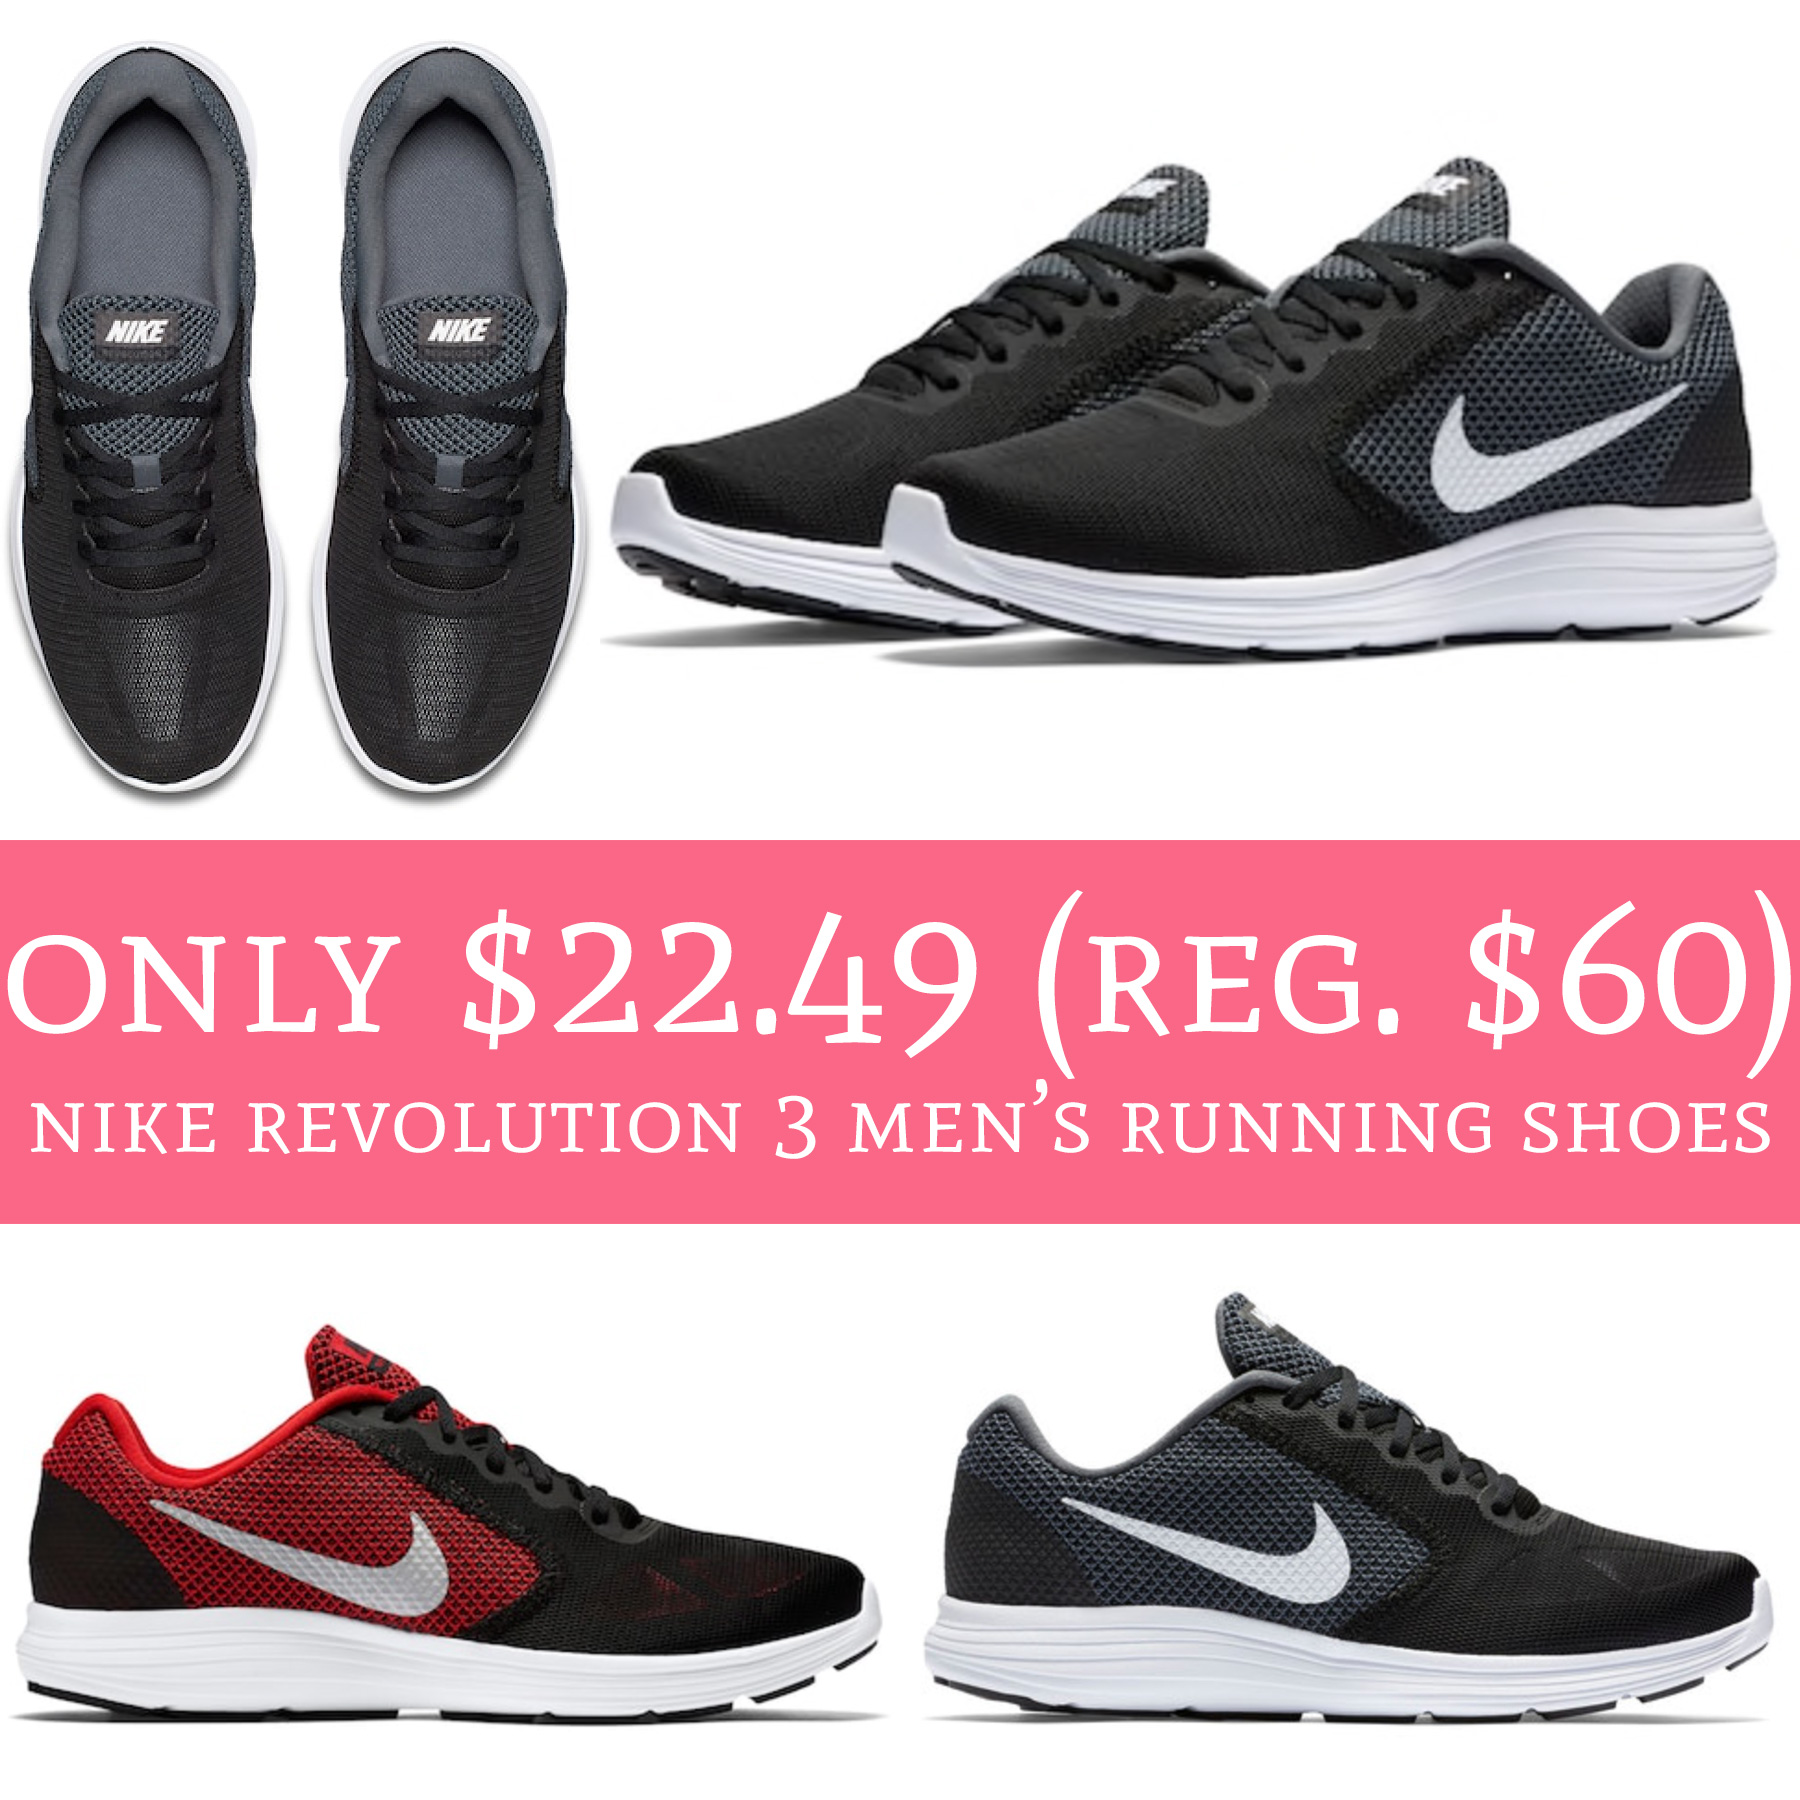 Pre Black Friday Deals are LIVE! Head to Kohl's where you can order Nike  Revolution 3 Men's Running Shoes for just $22.49 ...